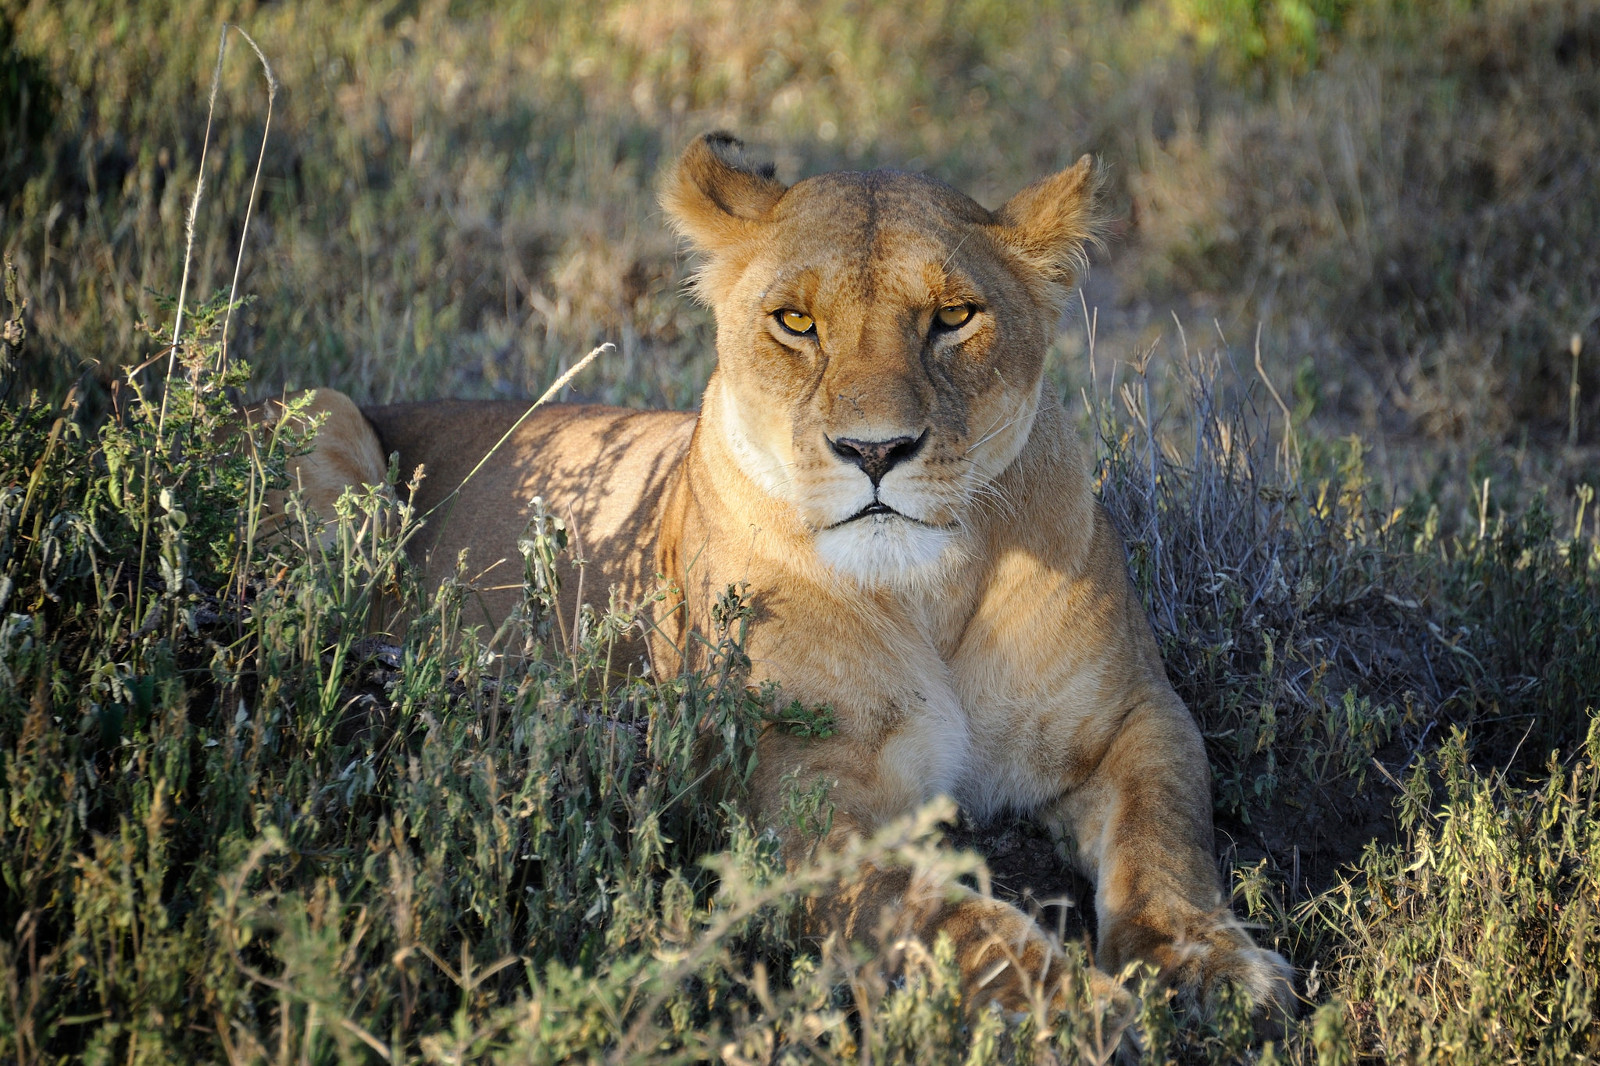 A Future Without Lions Might be Closer Than We Think